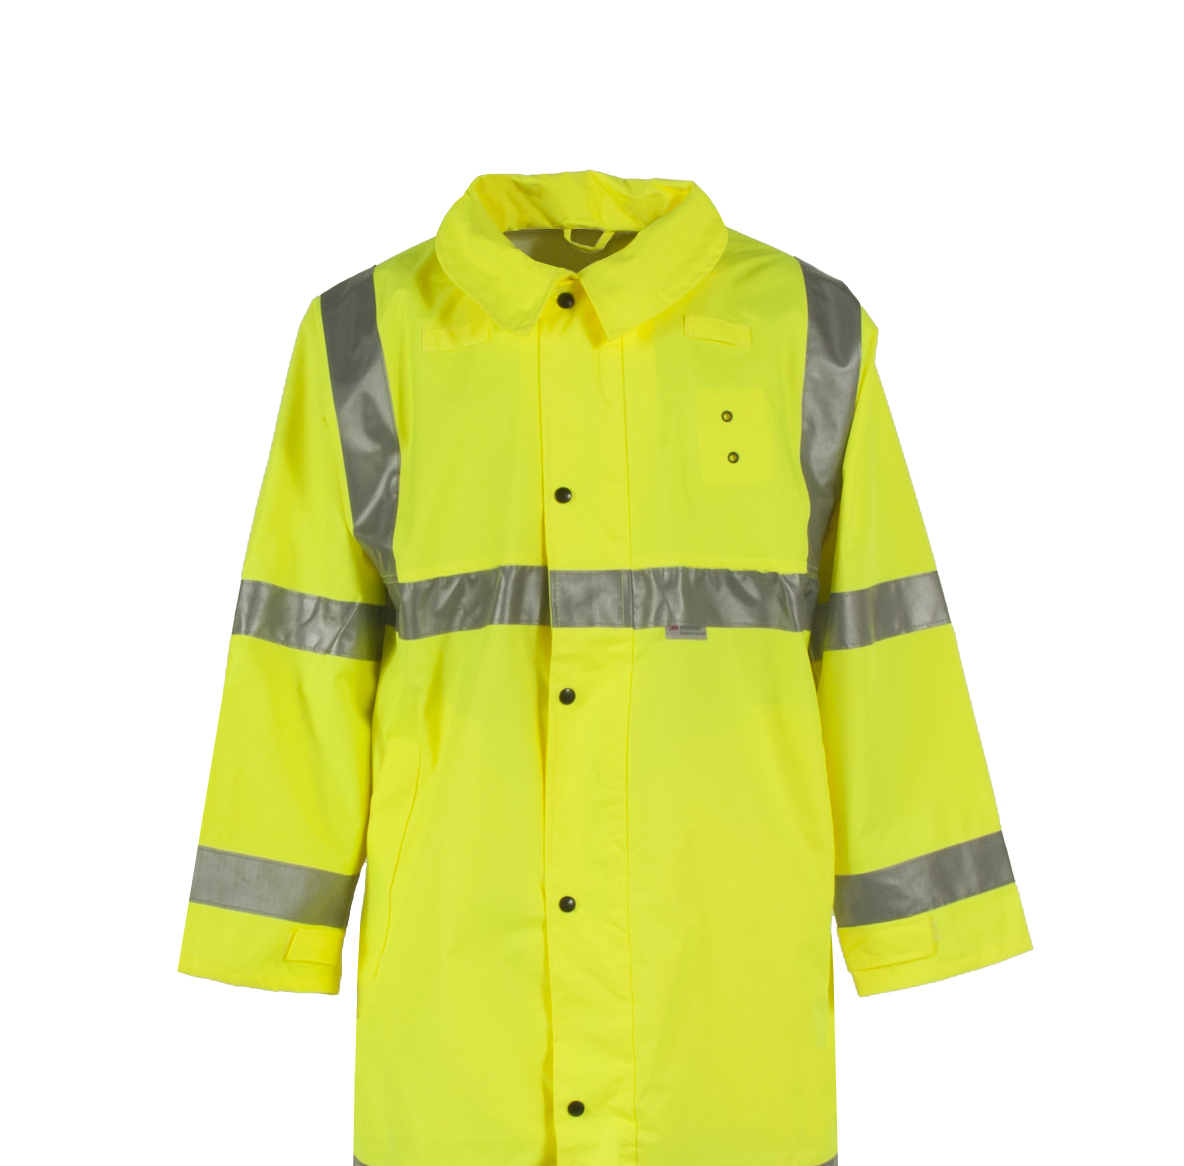 Neese Air Tex High Visibility Coat w/ Detachable Hood| 9100SC-